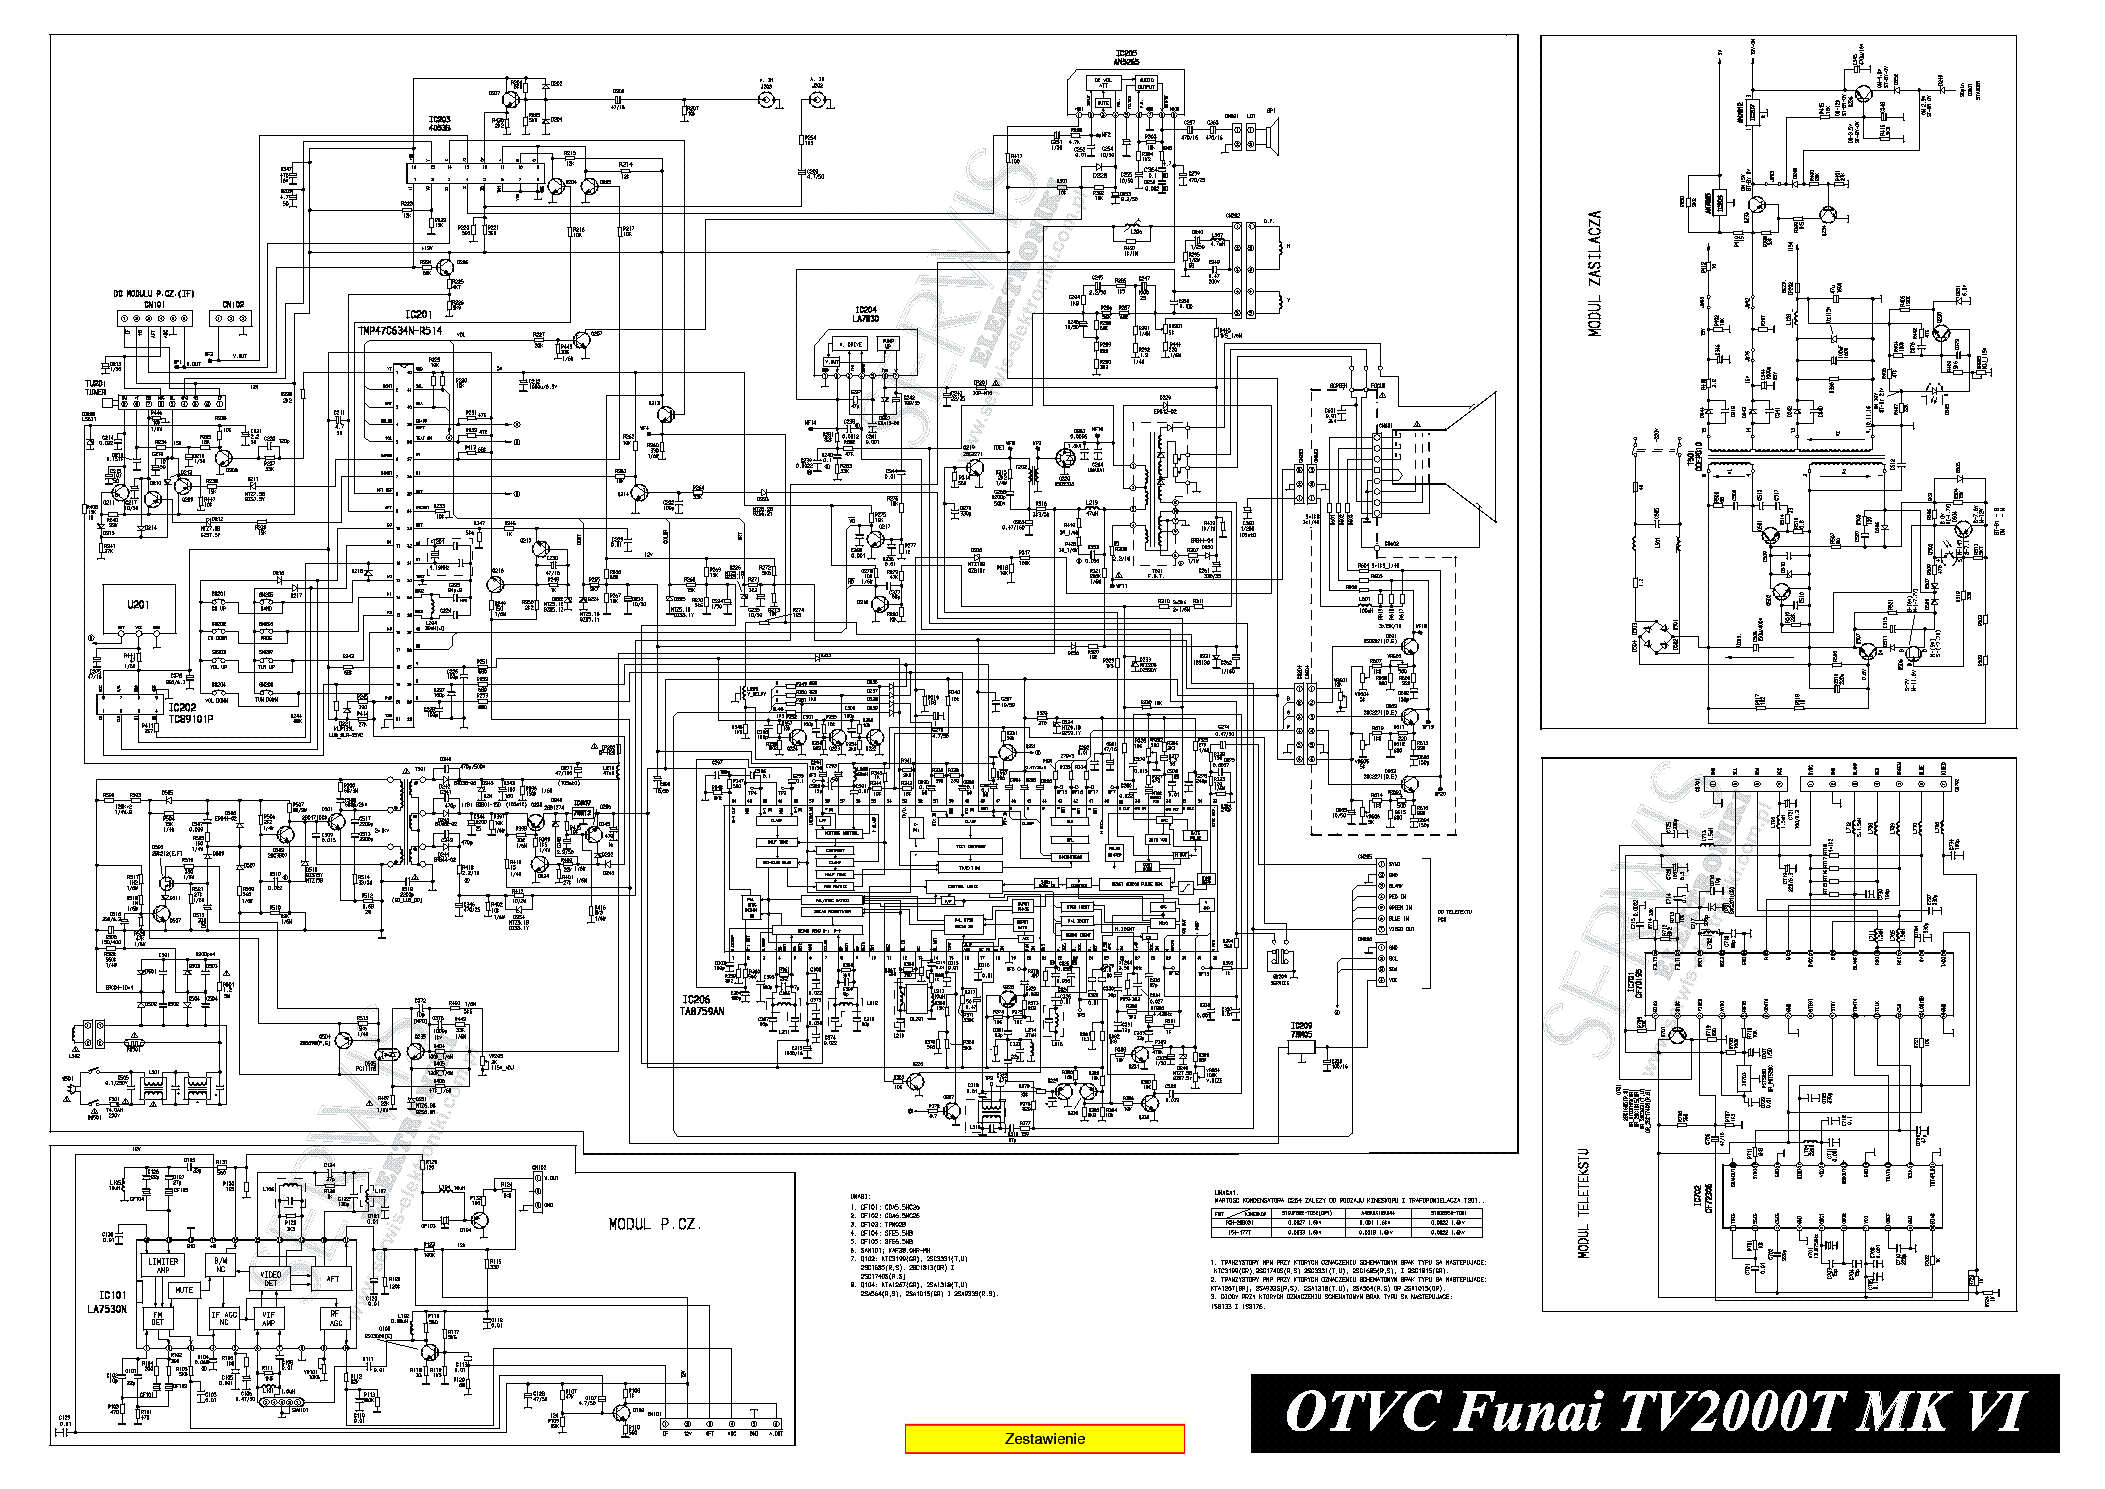 FUNAI TV-2000T MK VI Service Manual download, schematics